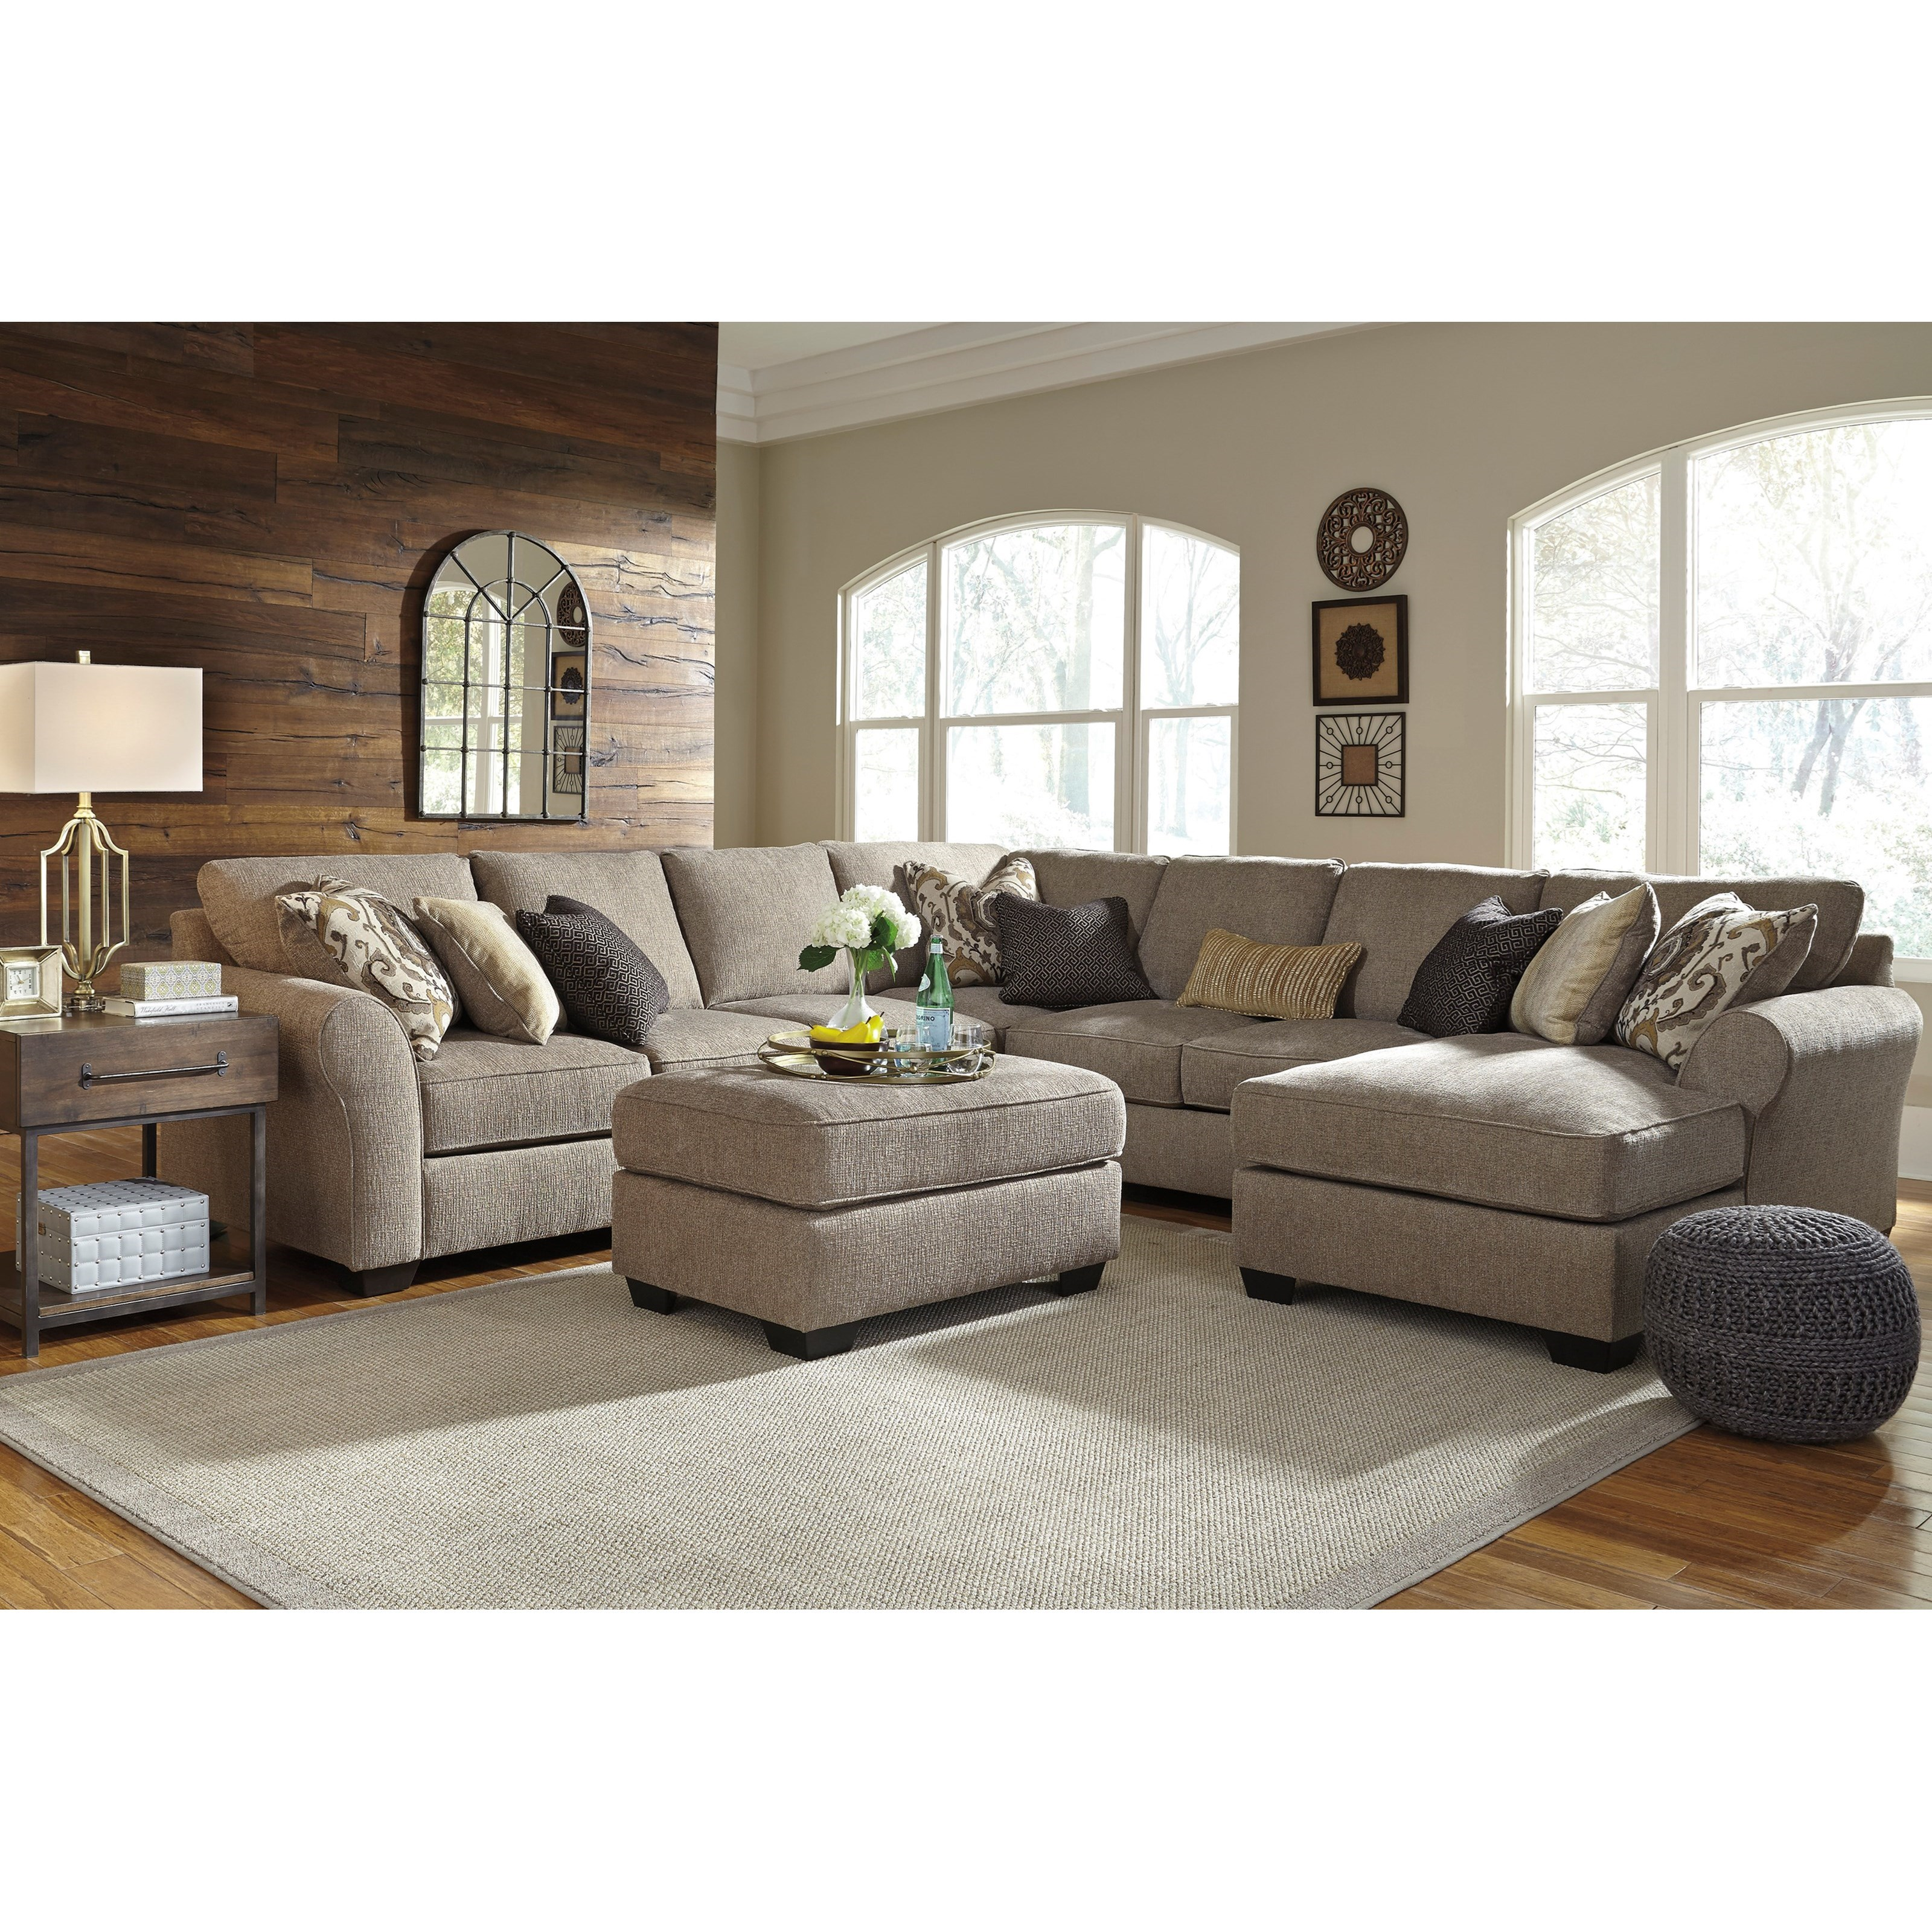 Benchcraft Pantomine 5 Piece Sectional With Right Chaise John V Schultz Furniture Sofa Sectional